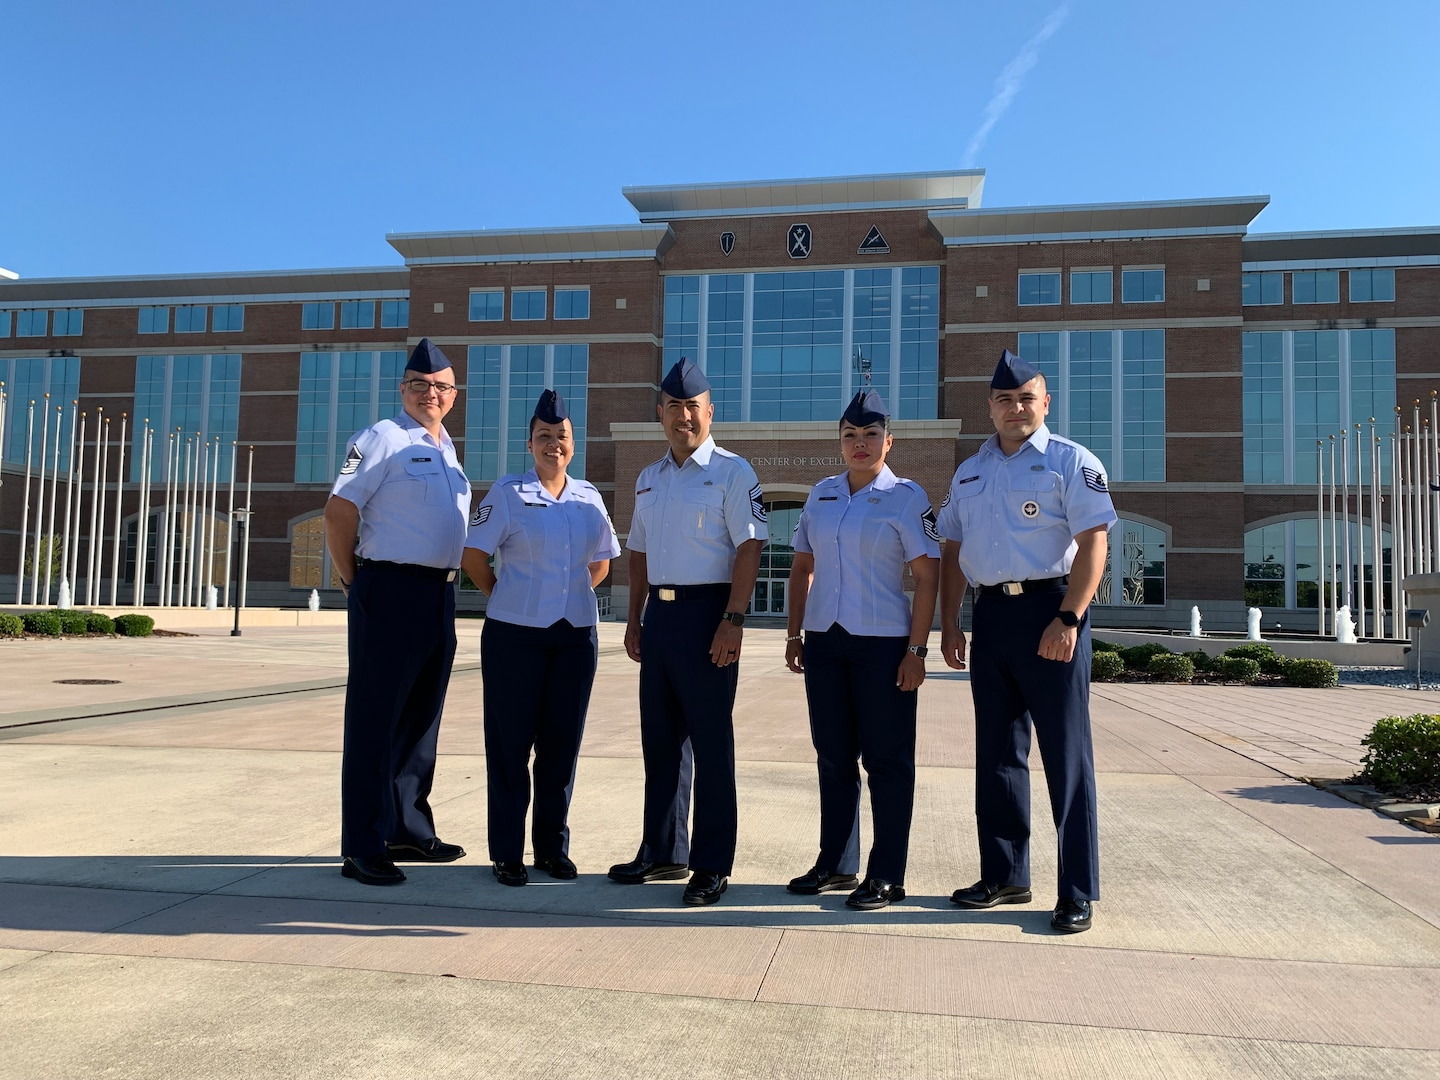 Five NCOs from IAAFA pose for group photo.